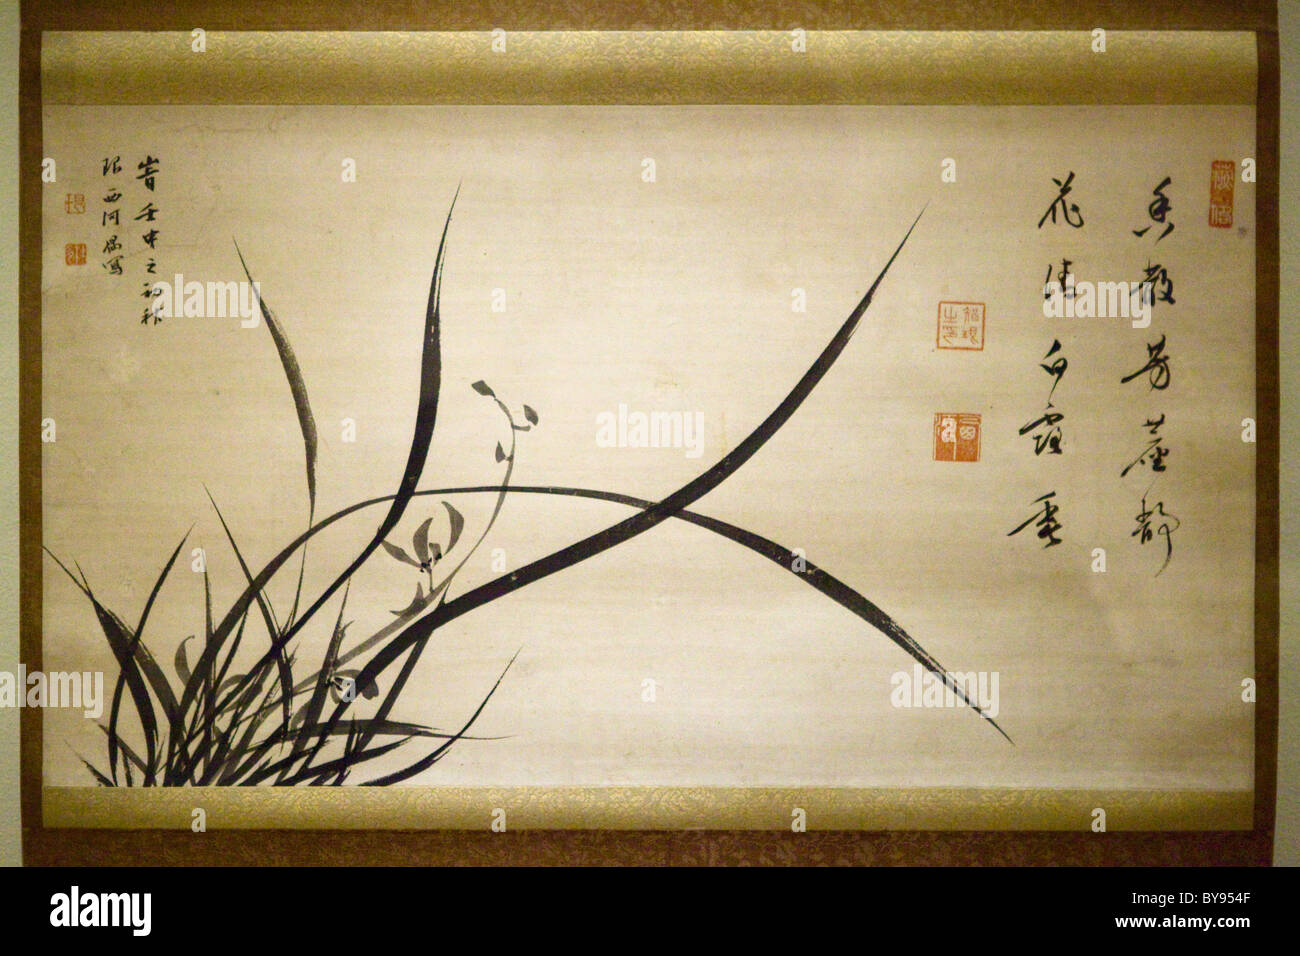 17th century Chinese orchid ink painting - Qing dynasty - Stock Image